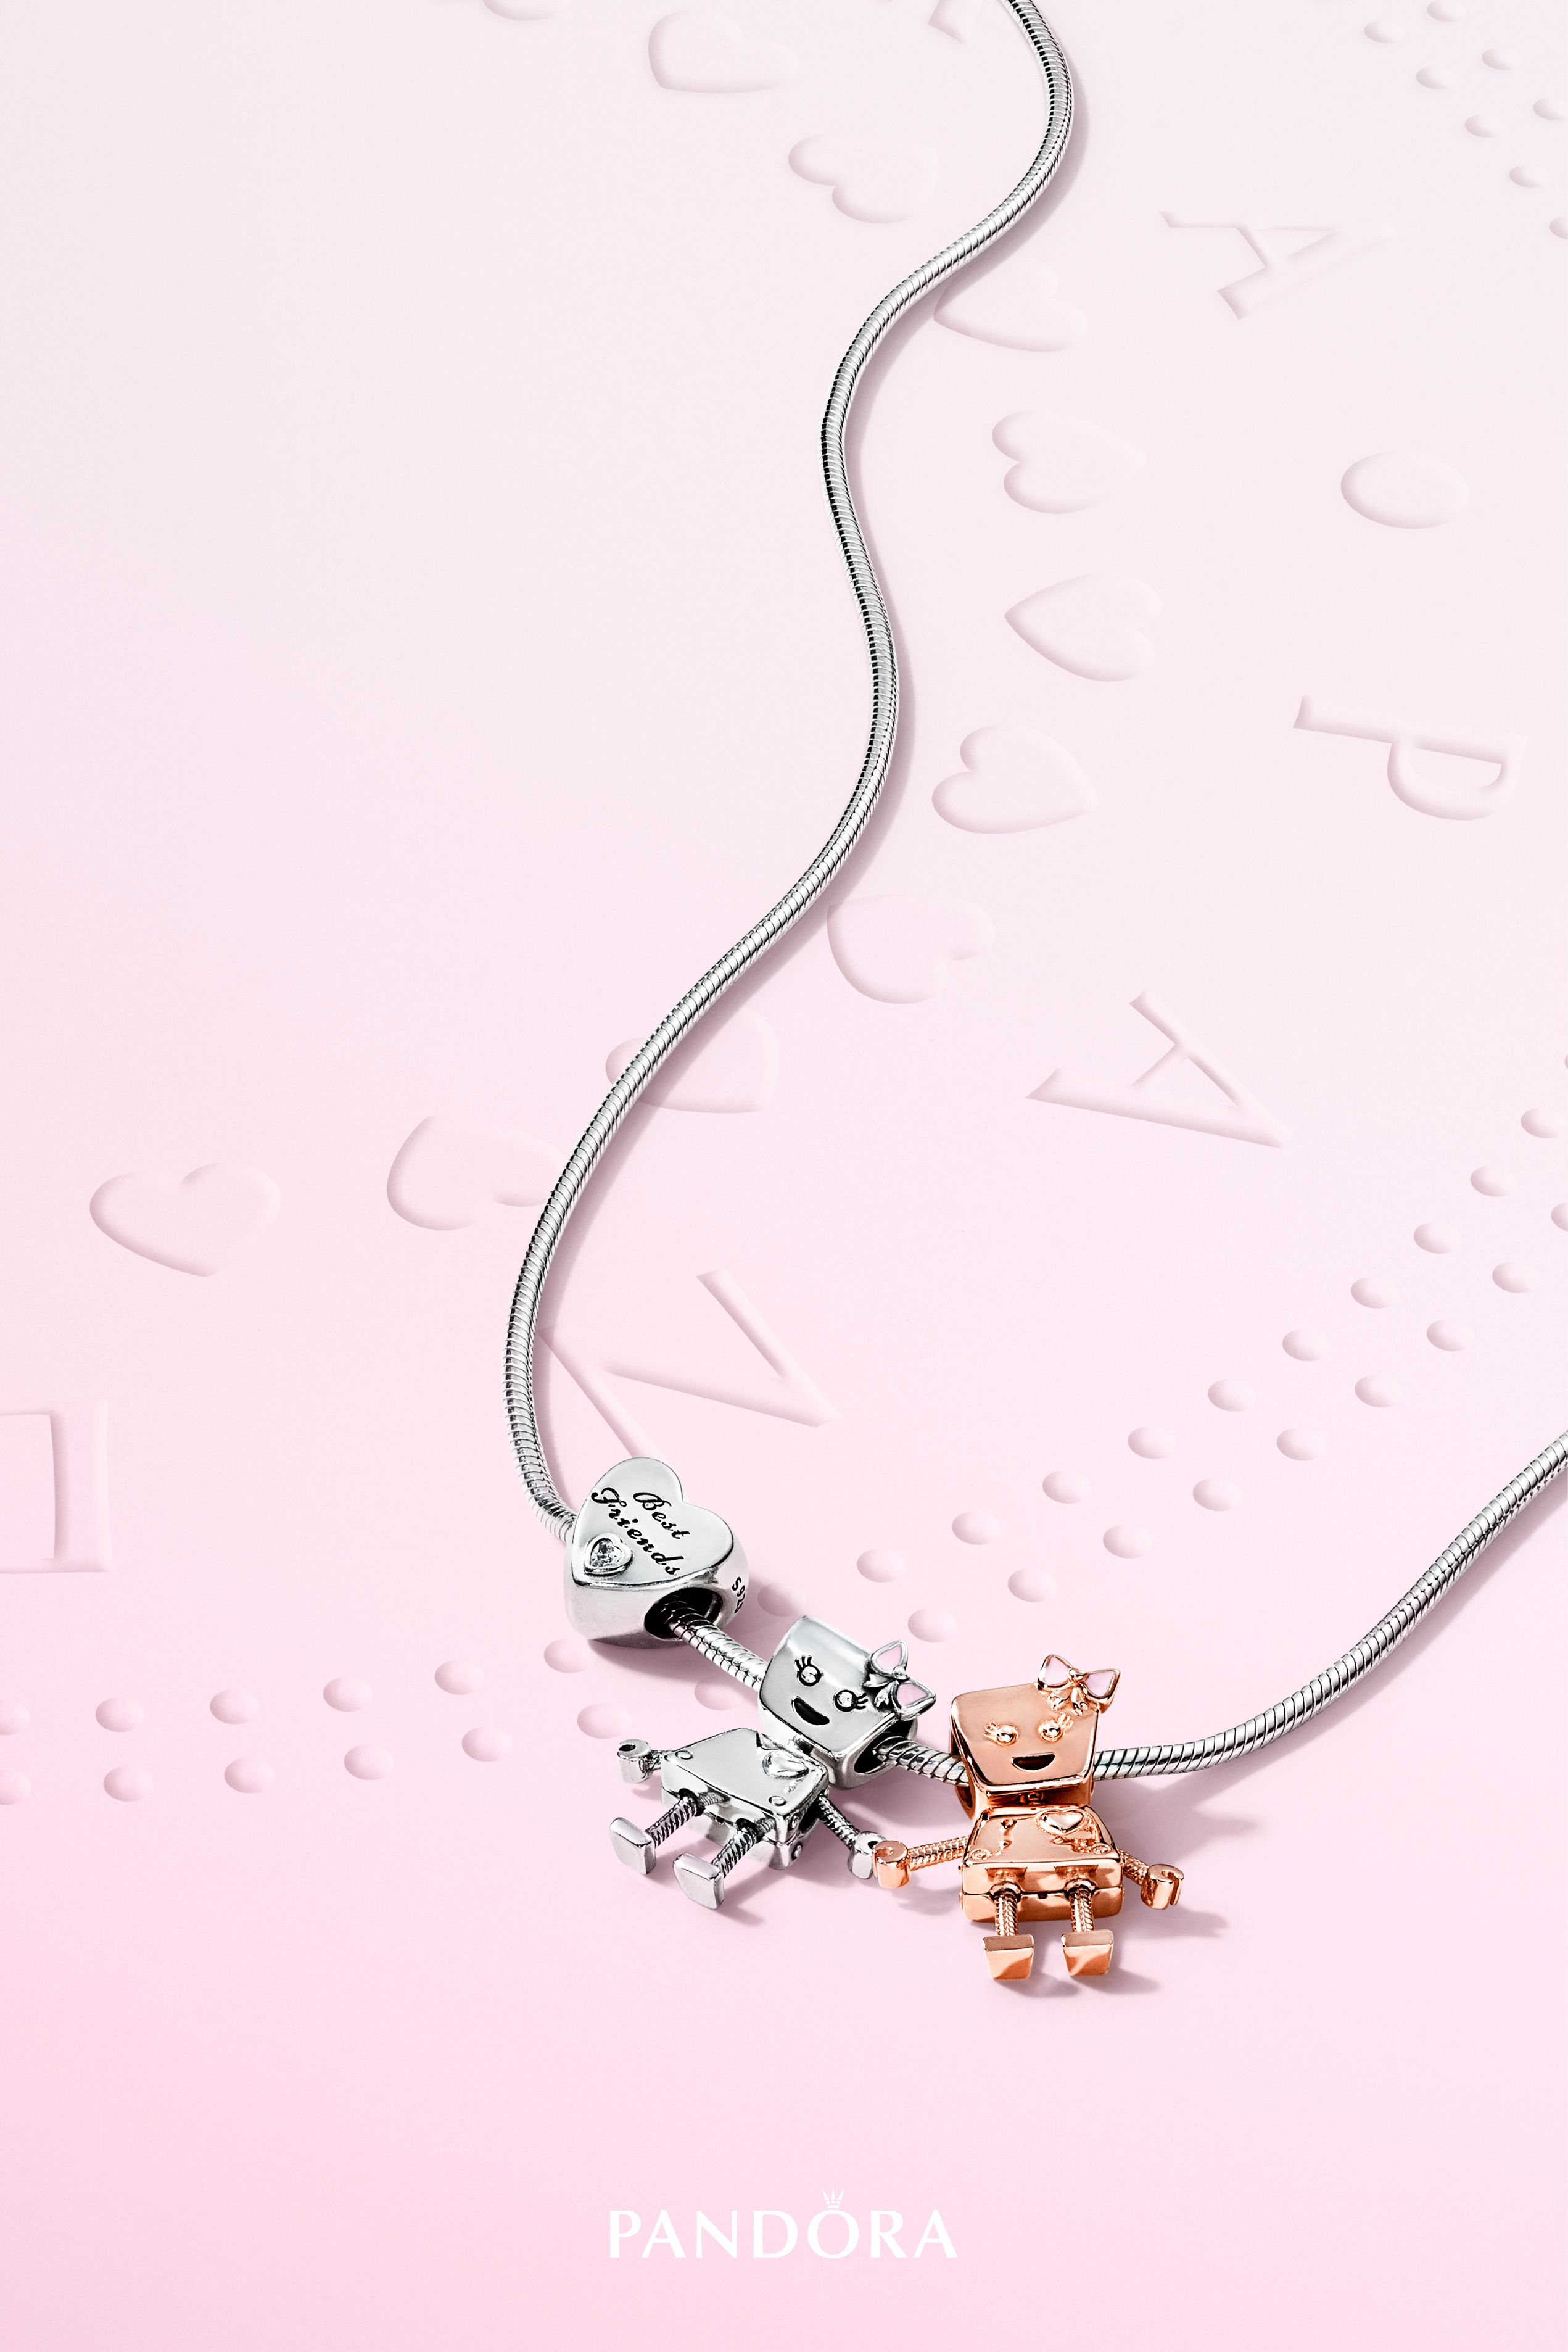 0e682ce1a Celebrate yours with Bella Bot, our sweet and smart robot charm and one of  our PANDORA Friends. Who would you give it to as a gift?